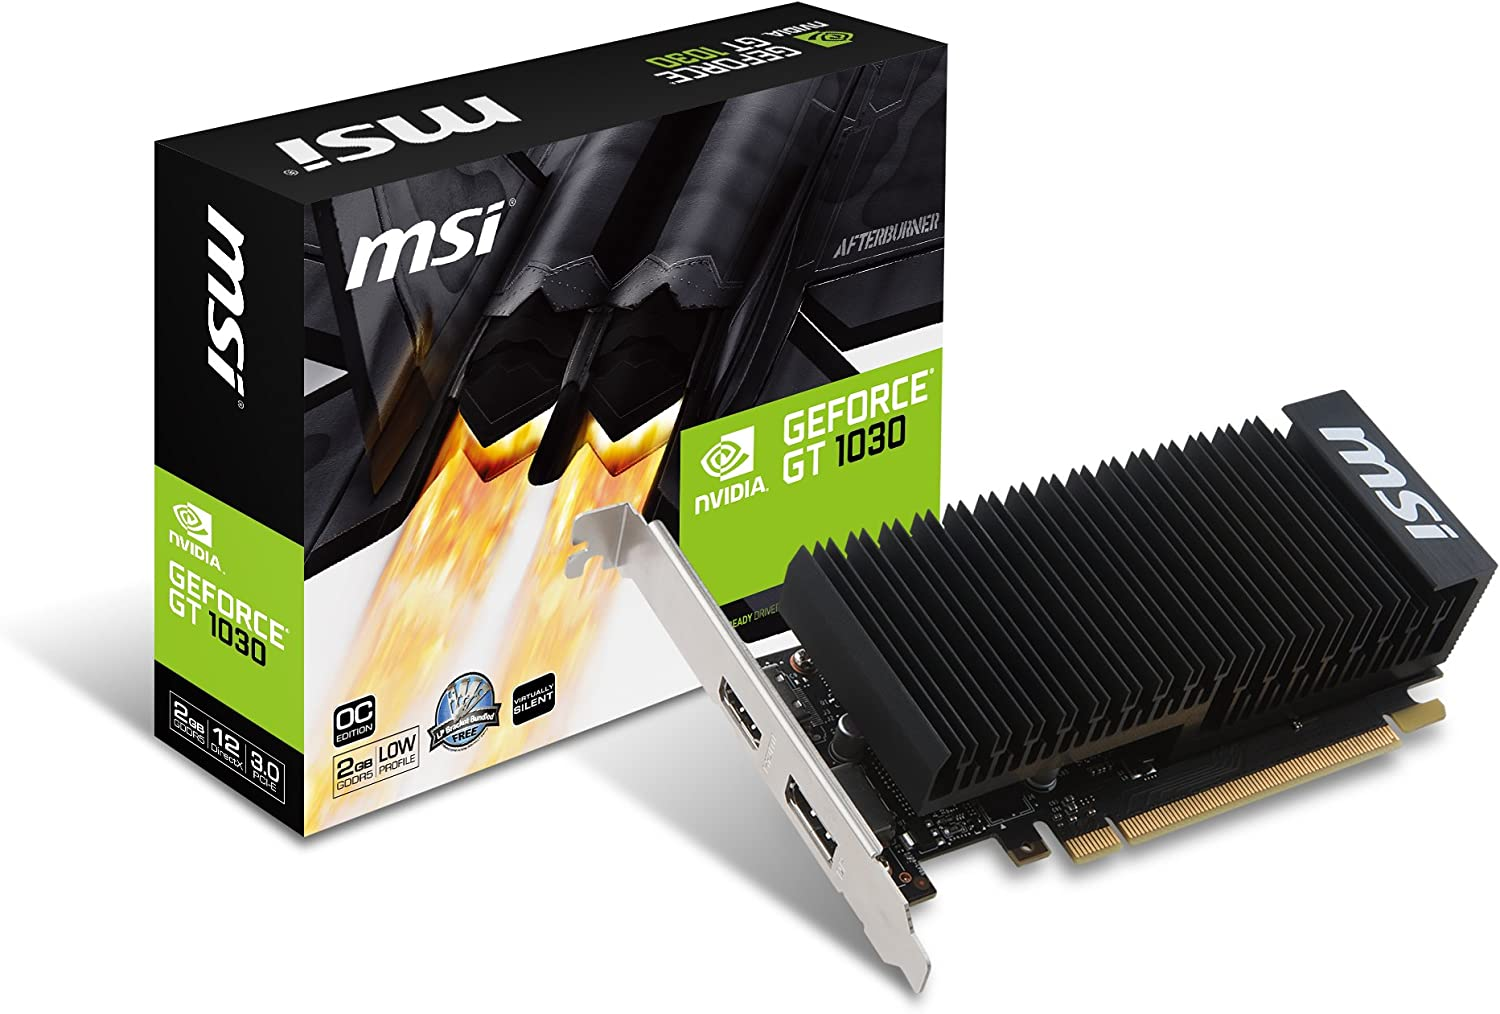 MSI GEFORCE GT 1030 2GH LP OC, V809-2498R